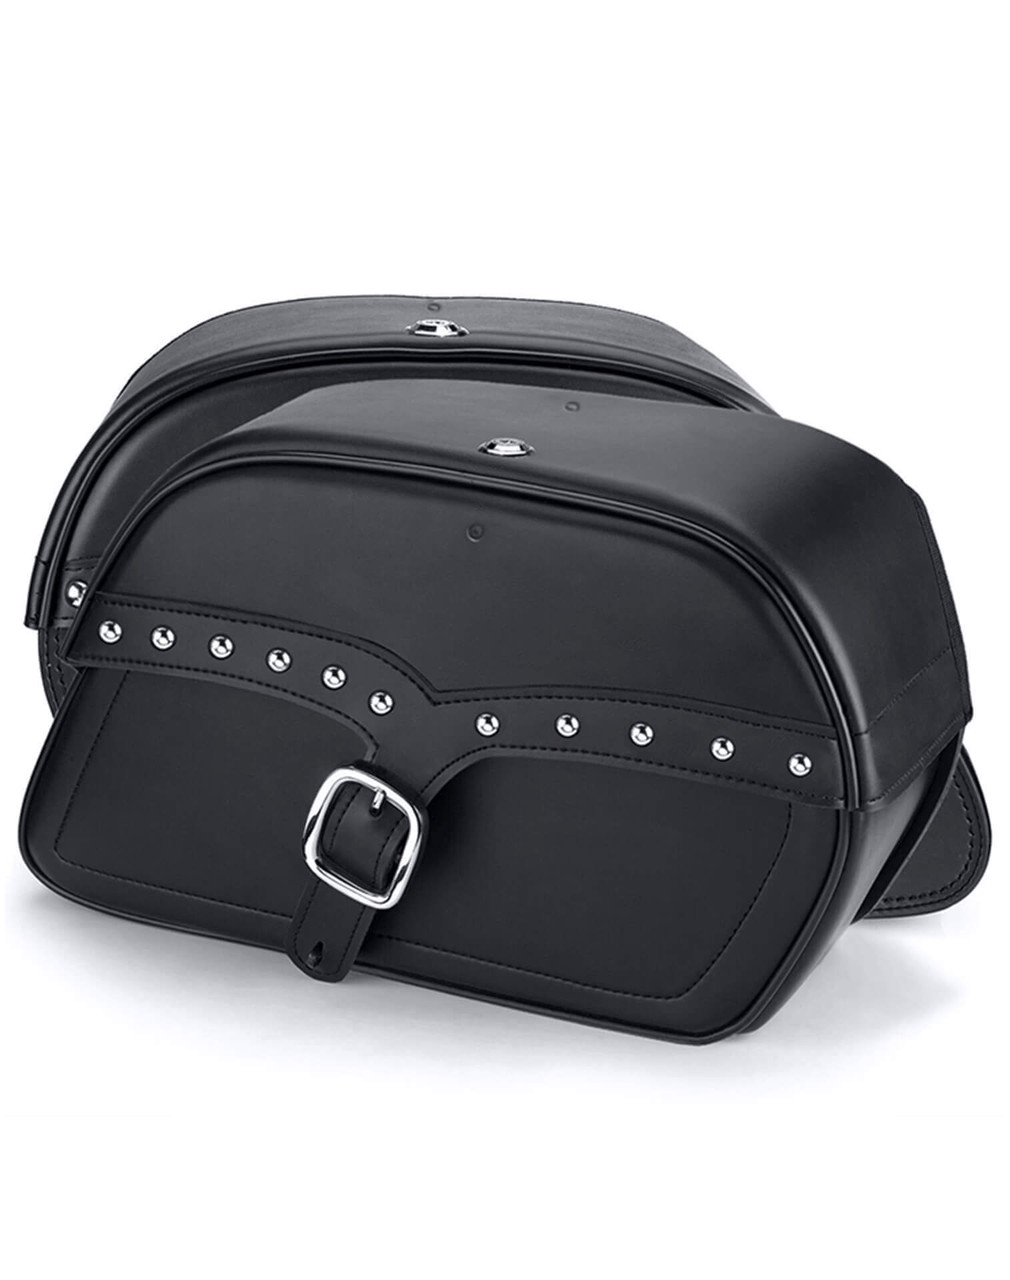 Viking Charger Single Strap Studded Medium Motorcycle Saddlebags For Harley Dyna Low Rider FXDL Both Bags View